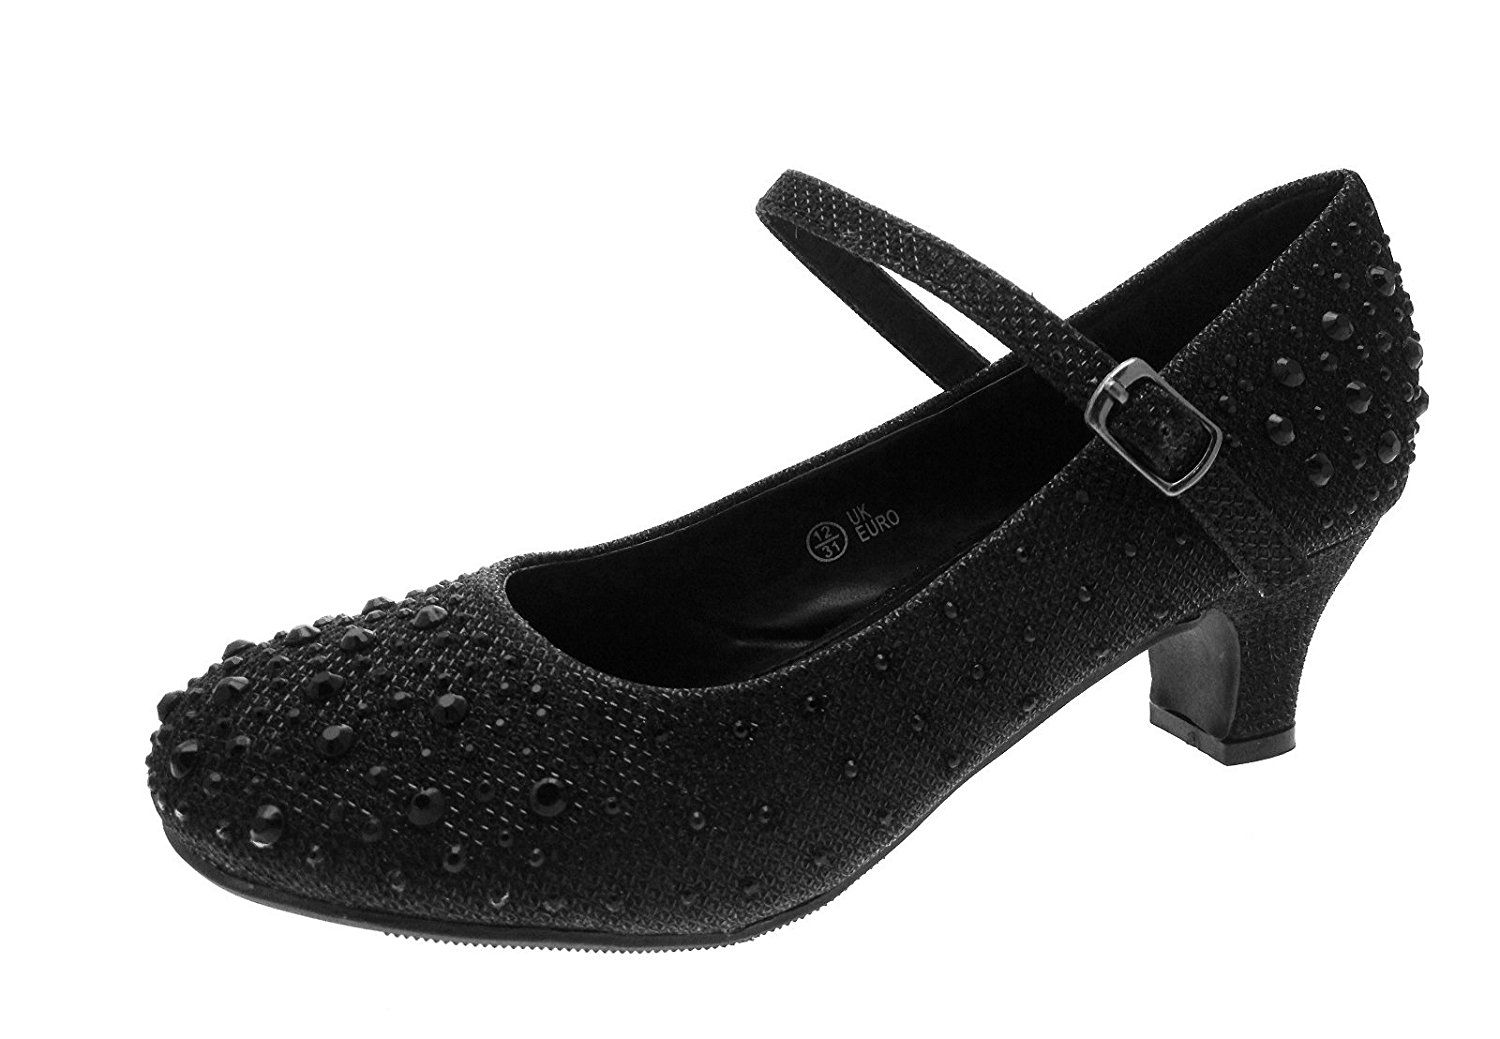 97ccb2a2136 Kids Girls Mary Jane Party Shoes Diamante Glitter Bridesmaids Low ...